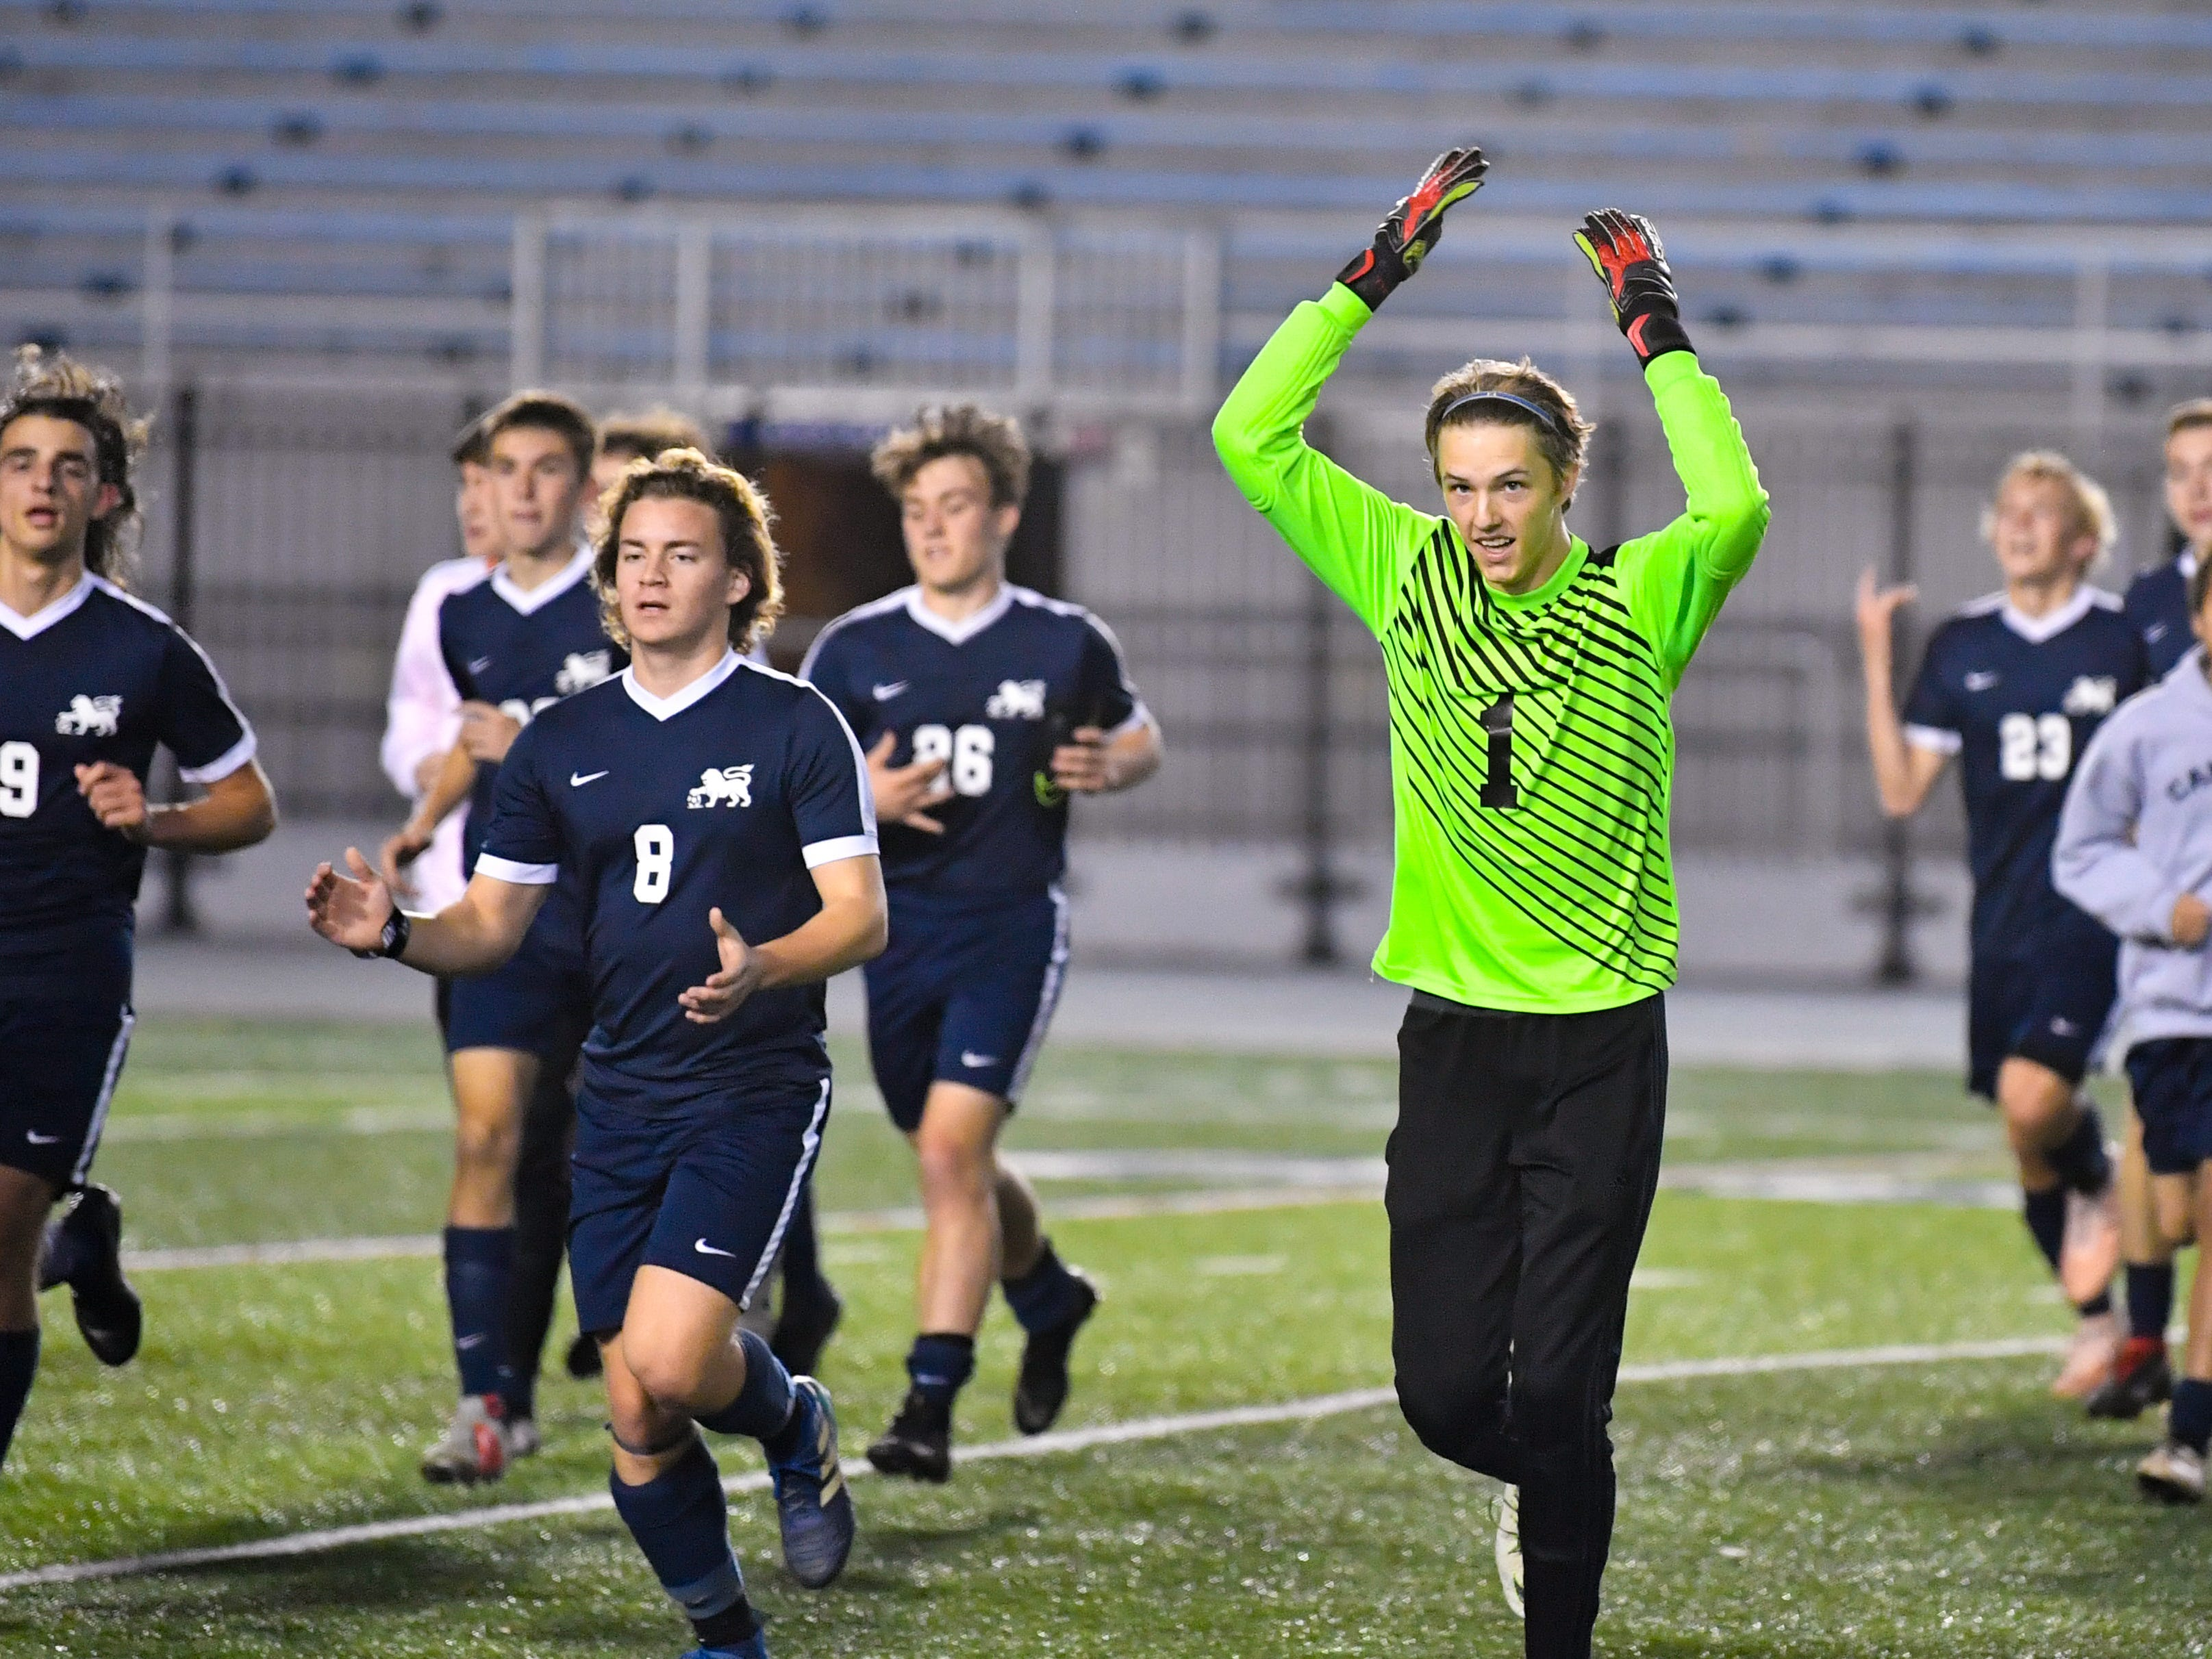 Camp Hill takes a victory lap after the District 3 Class 1A boys' soccer finals between York Catholic and Camp Hill at Hersheypark Stadium, October 31, 2018. The Lions beat the Fighting Irish 2-0.